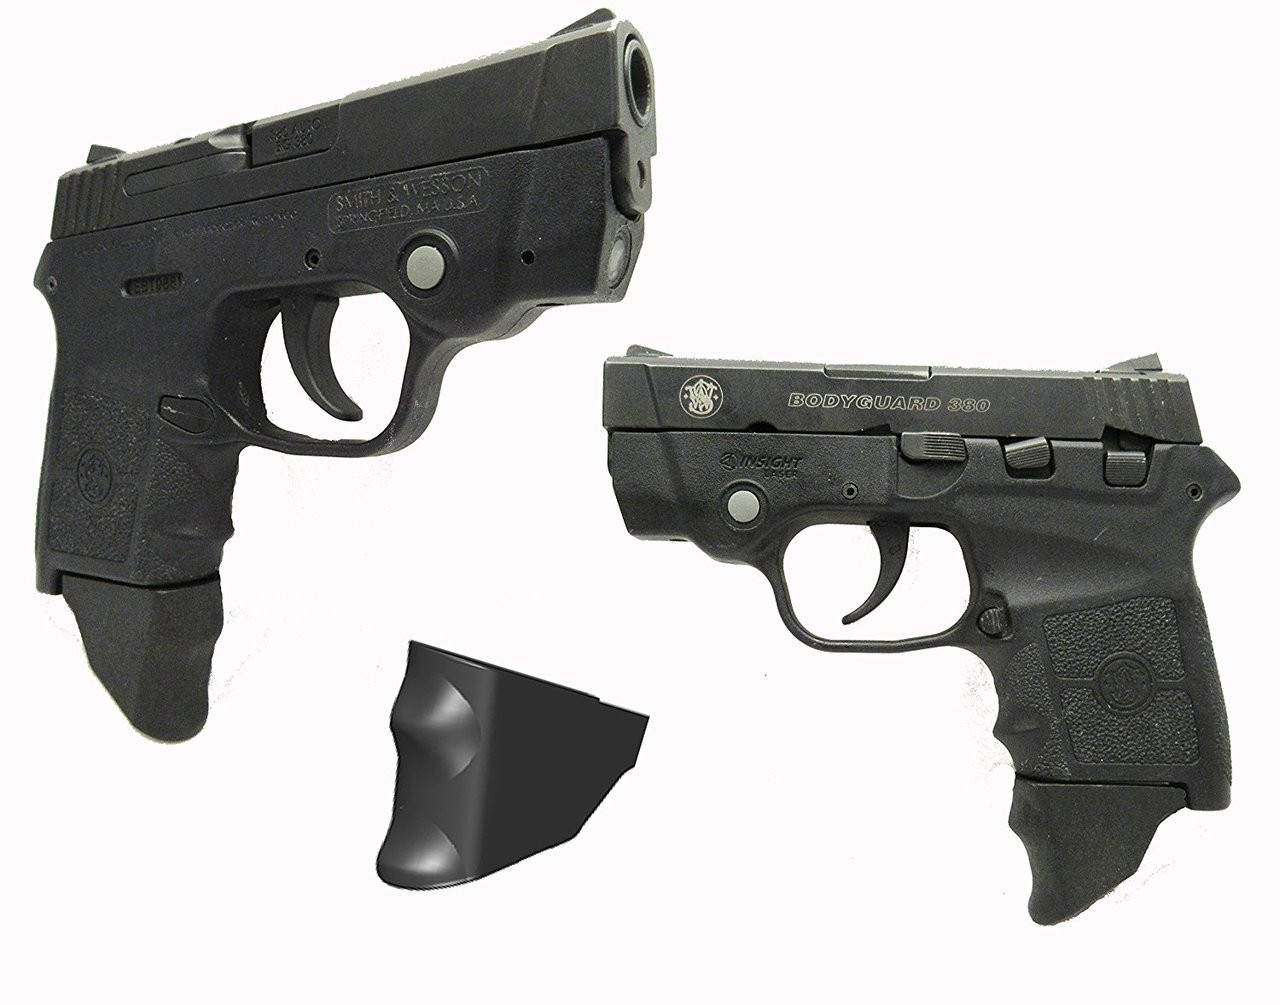 Garrison Grip Extension Fits Smith & Wesson Bodyguard 380 & M&P Bodyguard 380